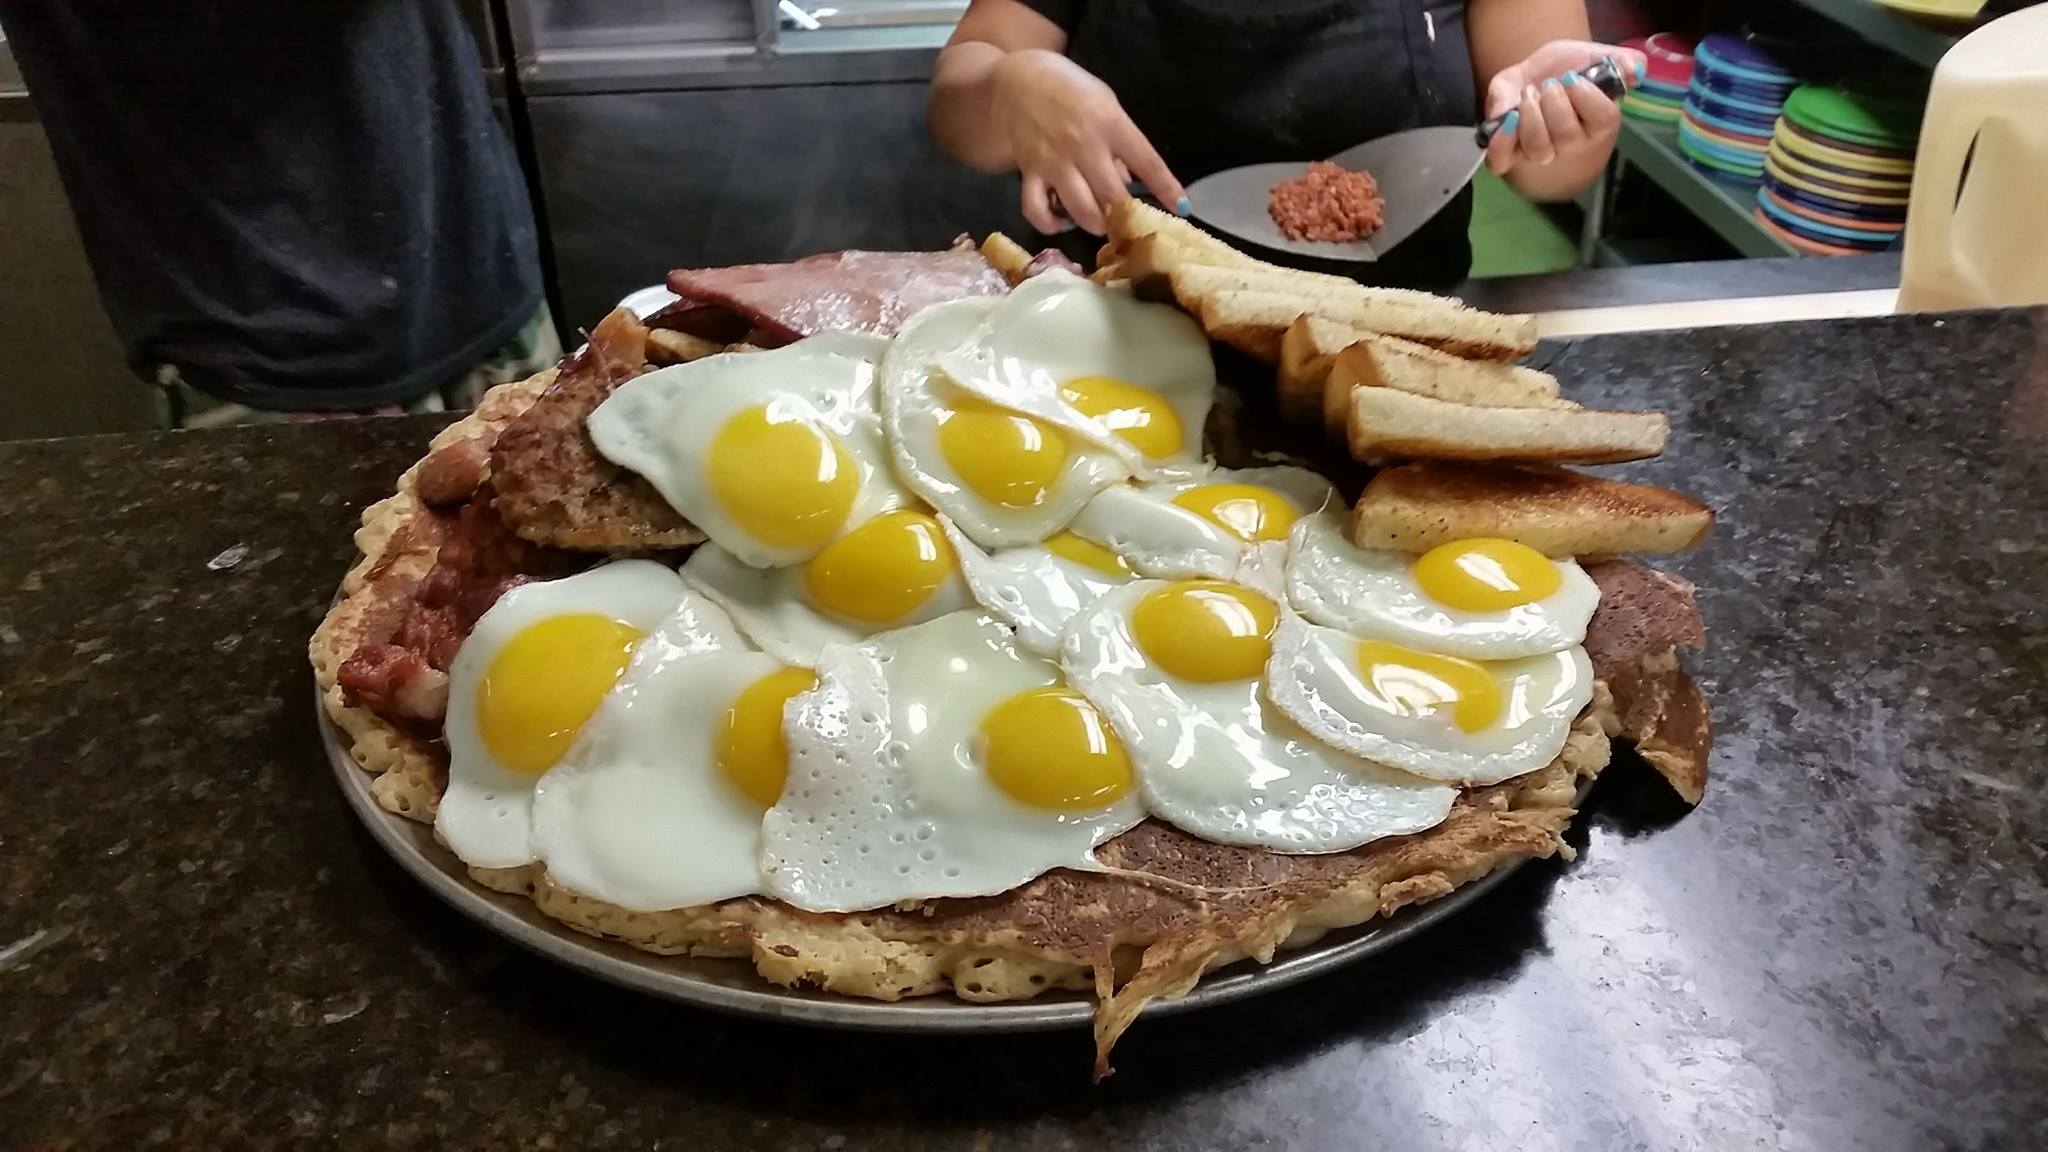 This Insane Food Challenge At That Breakfast Place In